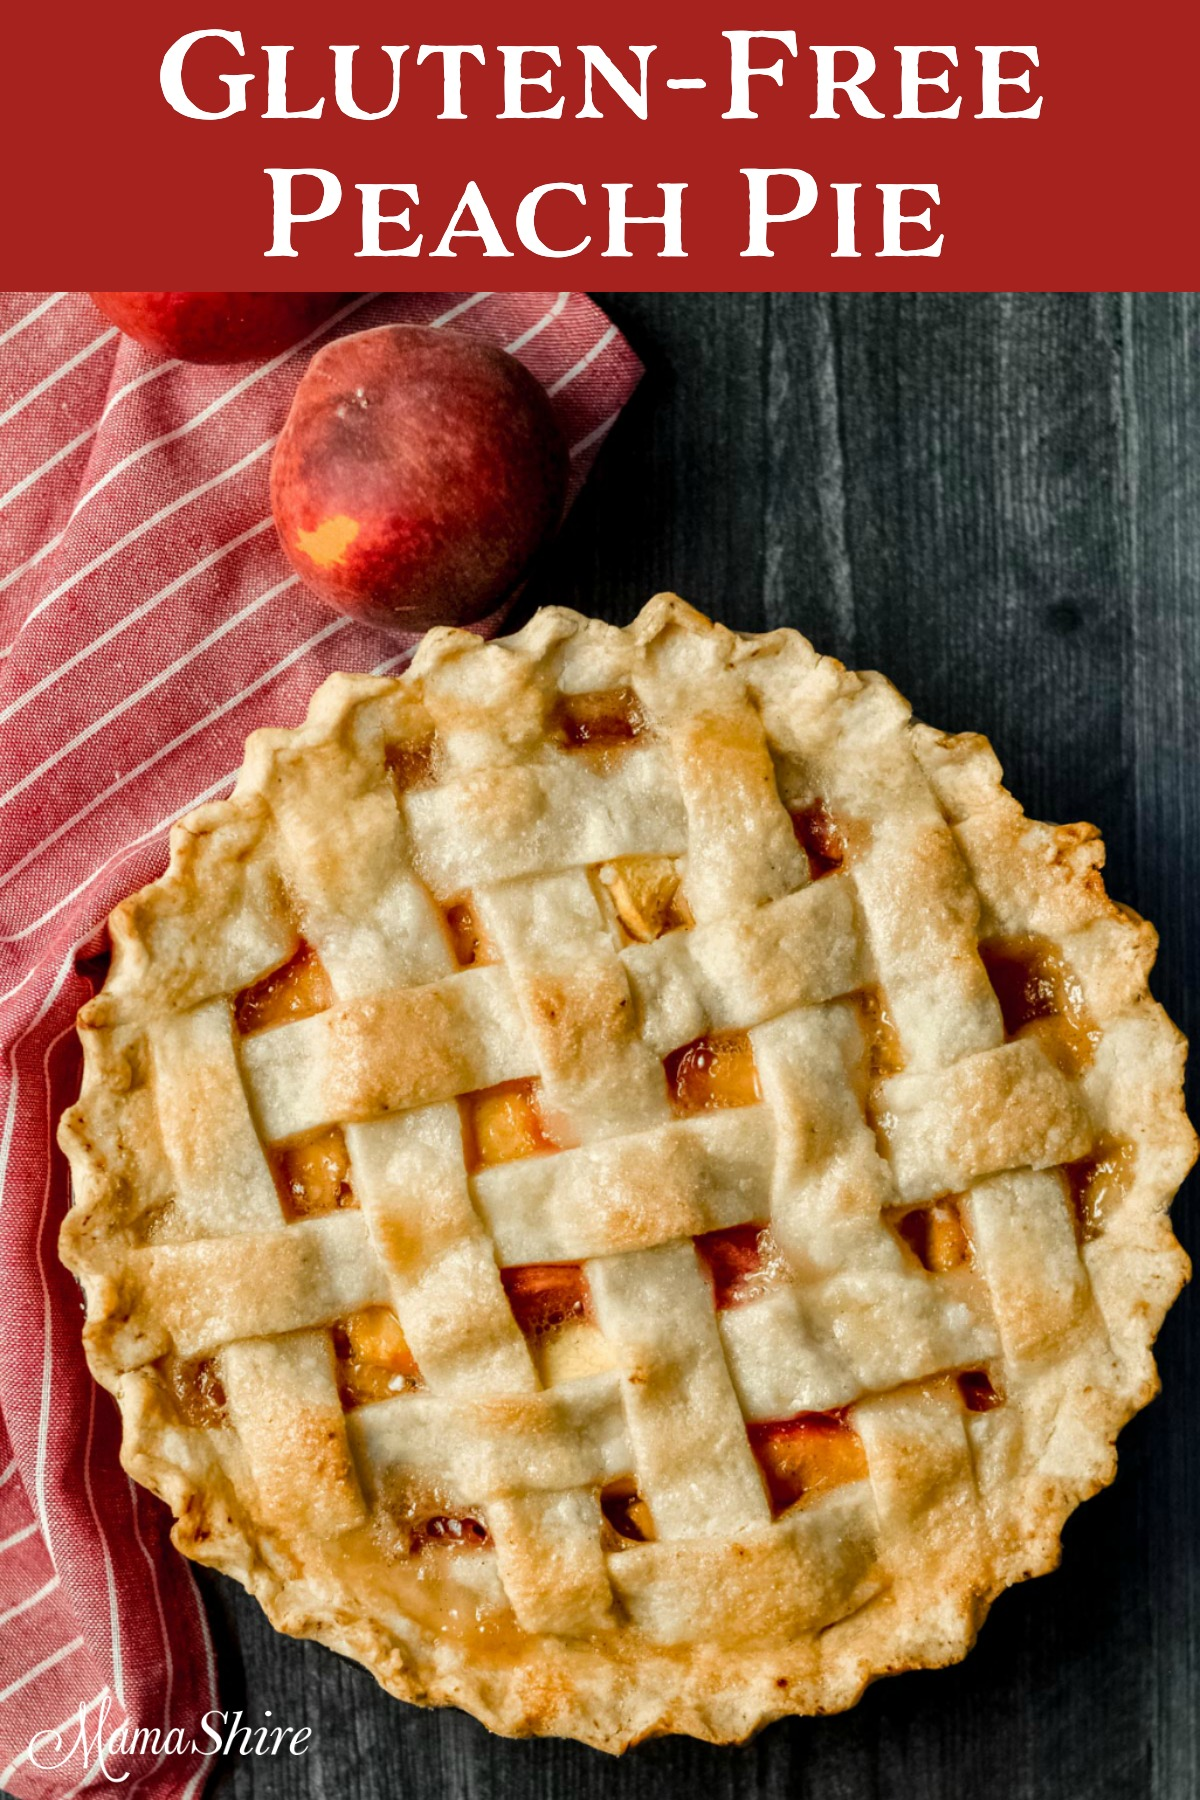 A whole gluten-free peach pie with a couple of fresh peaches.